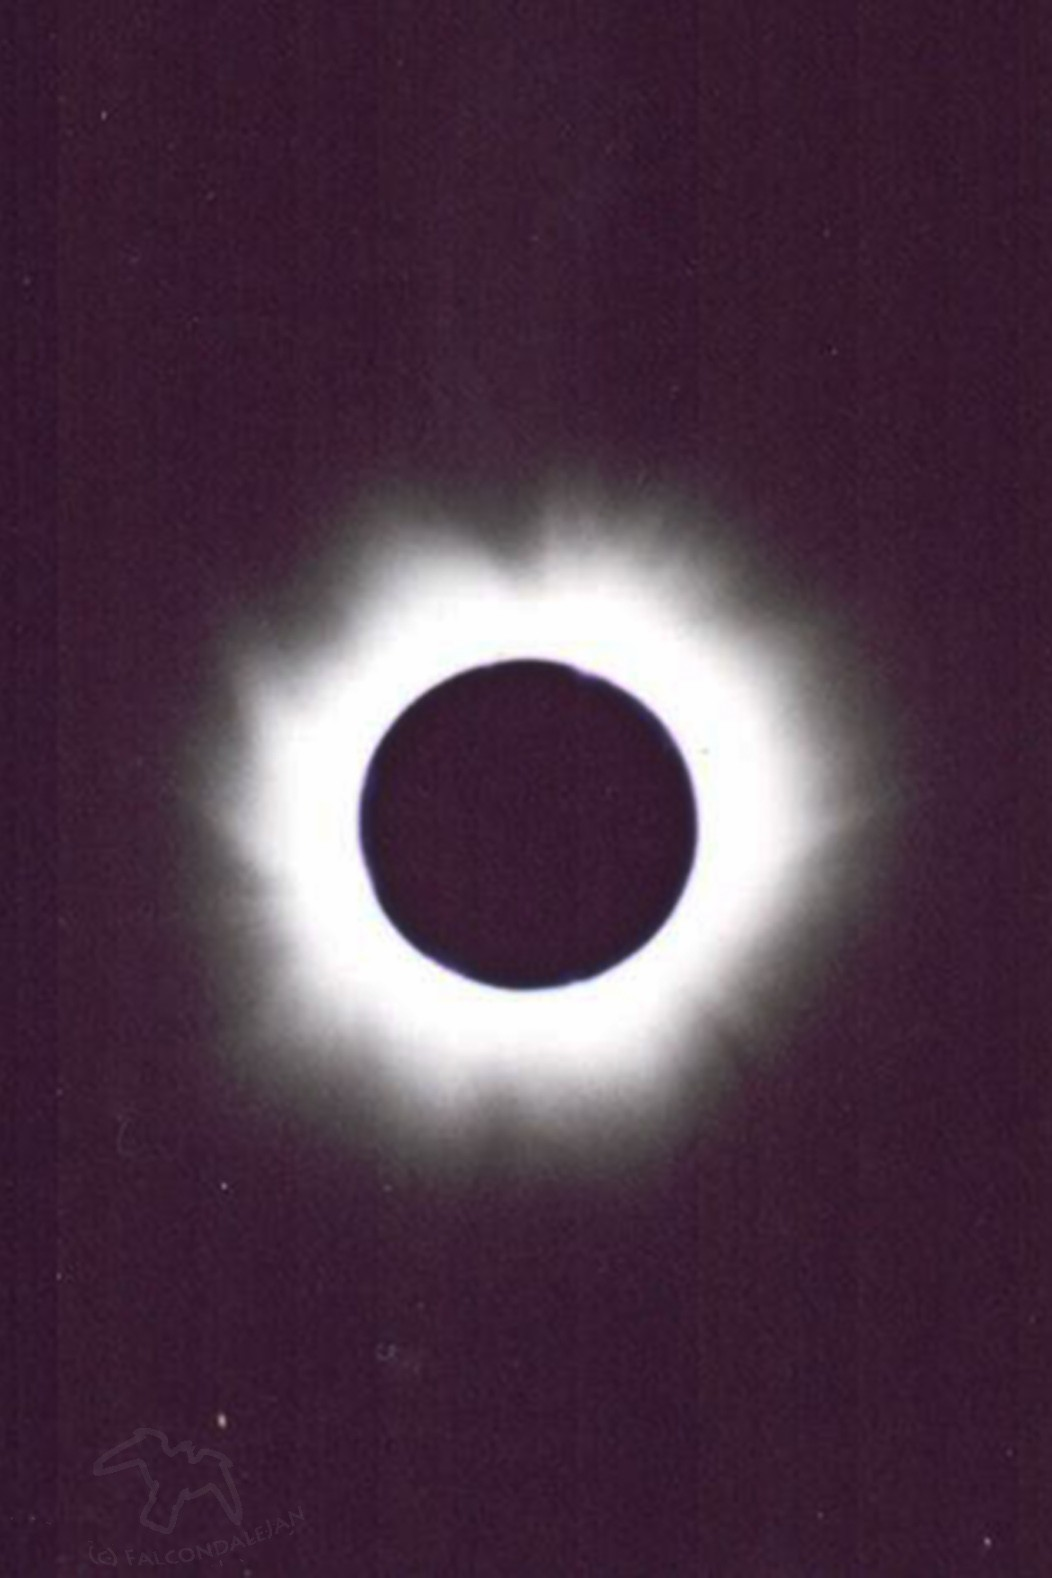 Image of 1999 total solar Eclipse, France. Plan to view the great American eclipse with photography tips - on Falcondale Life blog. Simple photography tips with no extra equipment and planning a trip to see the solar eclipse.